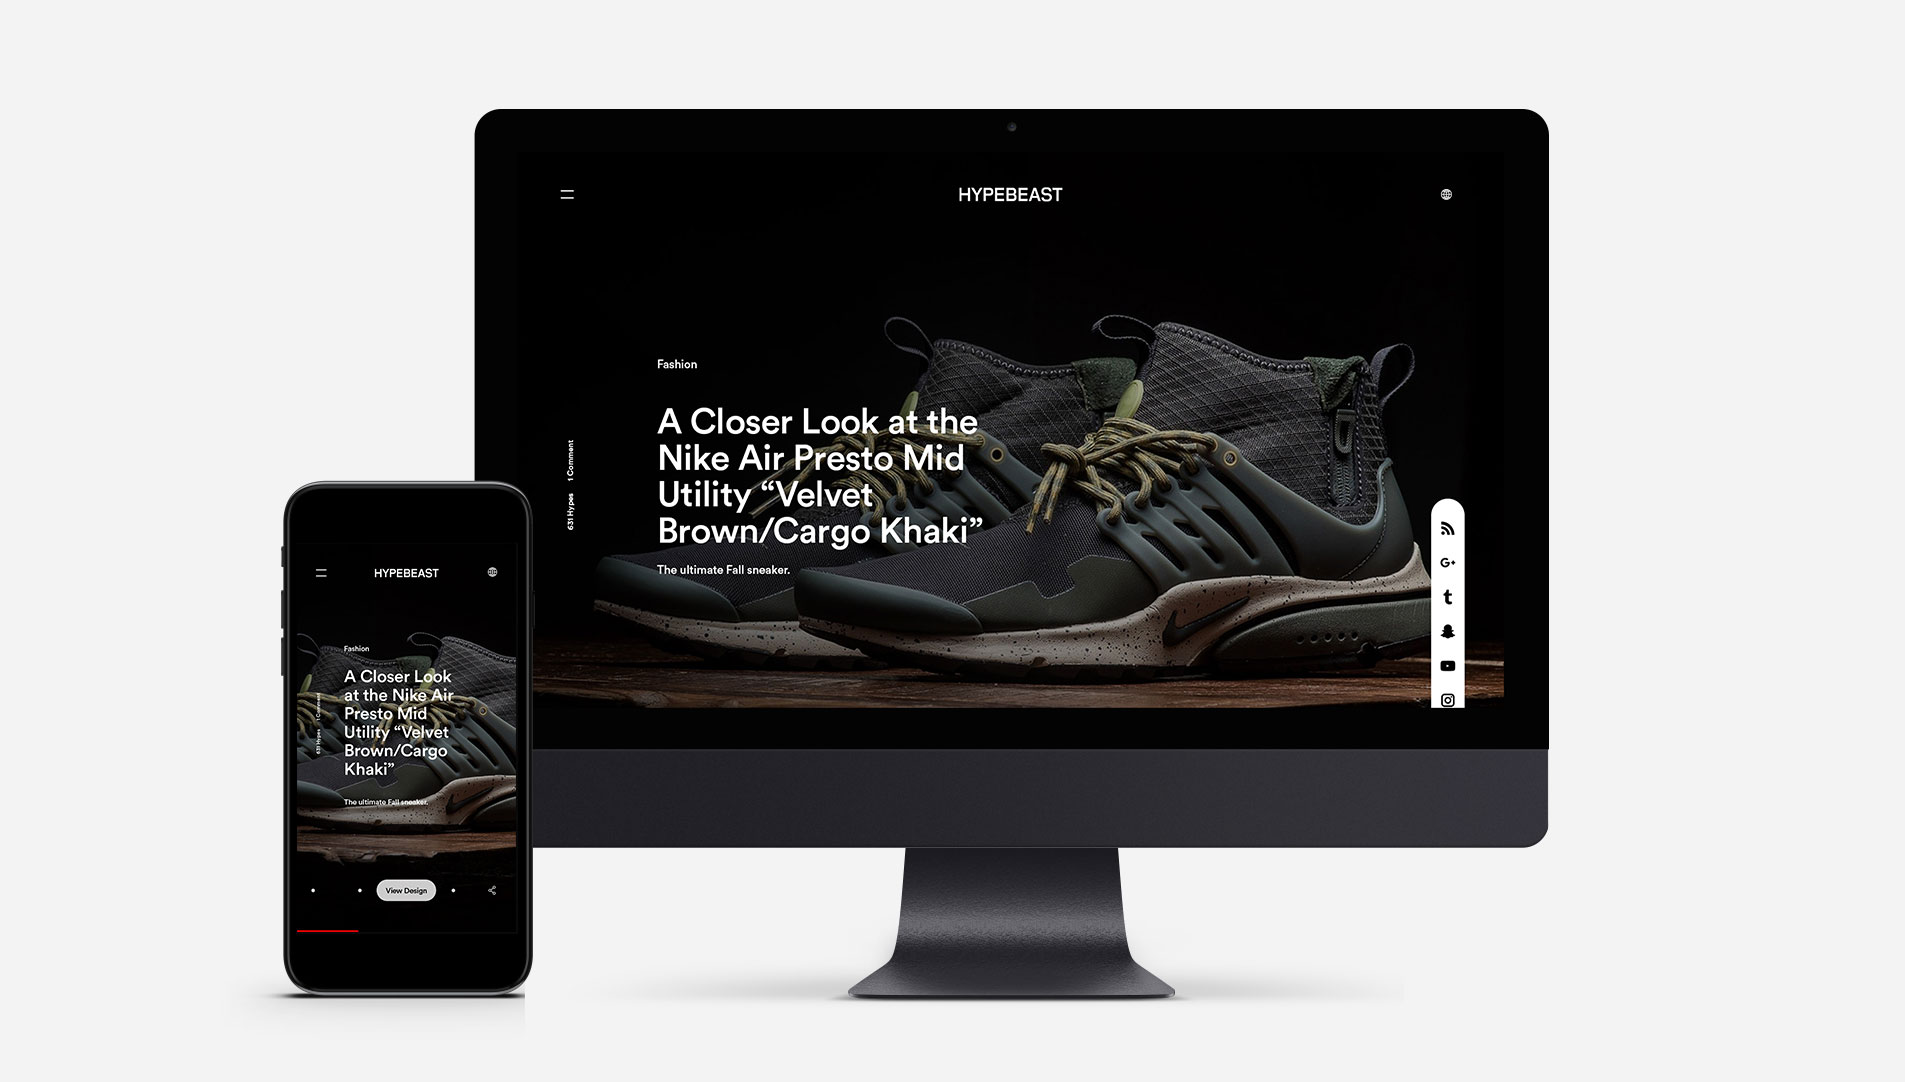 web design hong kong Hypebeast slideshow 04